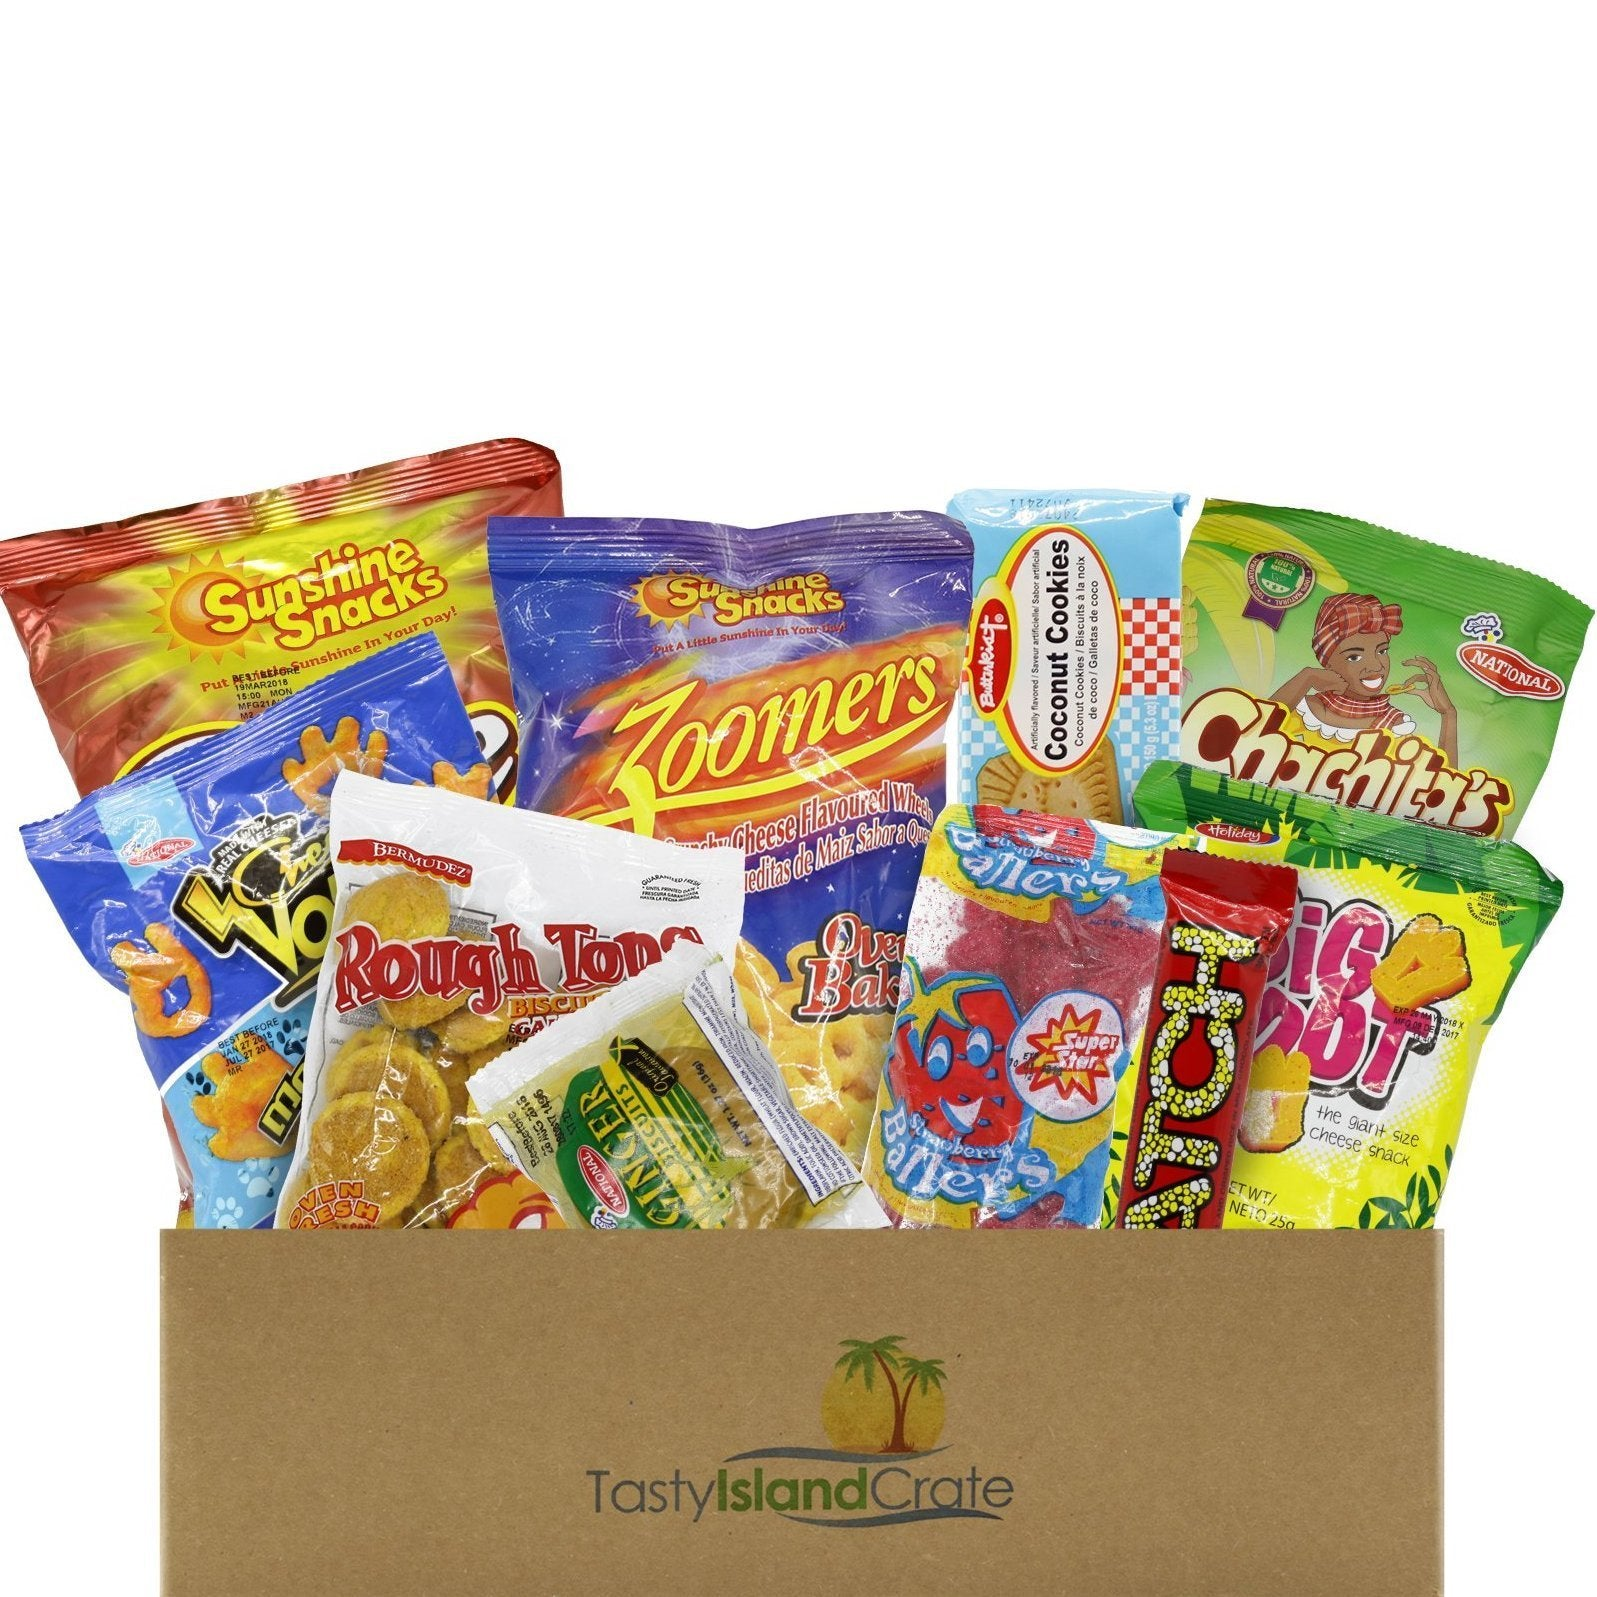 original caribbean snack crate from Tastyislandcrate